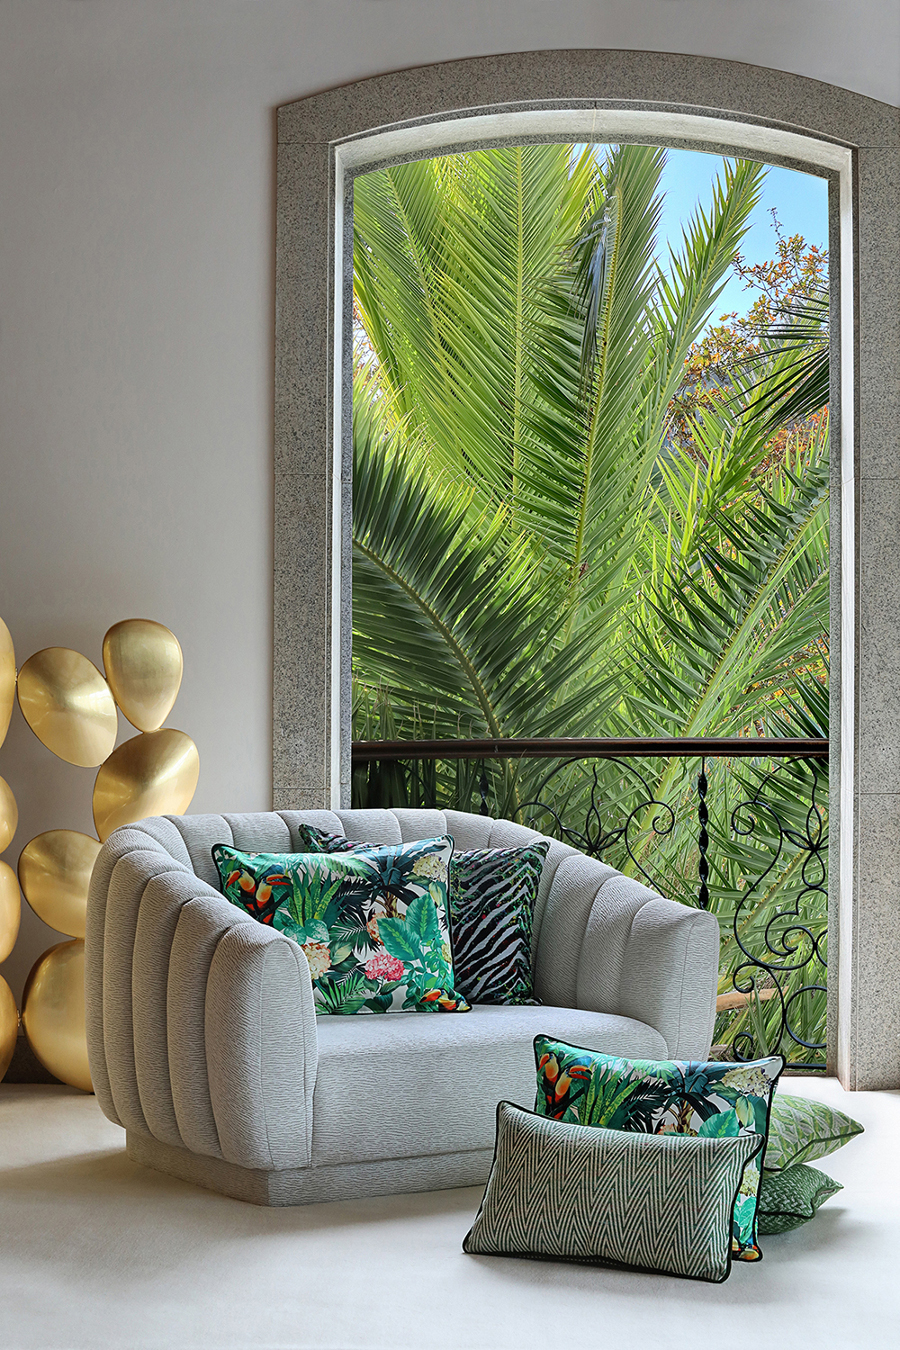 Pillows, drapes, or even armchairs can have the priviledge of being dressed by nature with tropical themes. Head over to this article that shows the best at M&O18. maison et objet Maison et Objet Sept: The Best Fall Trends For Upholstery Fabrics Maison et Objet September The Best Fall Trends For Your Upholstery Fabrics 12